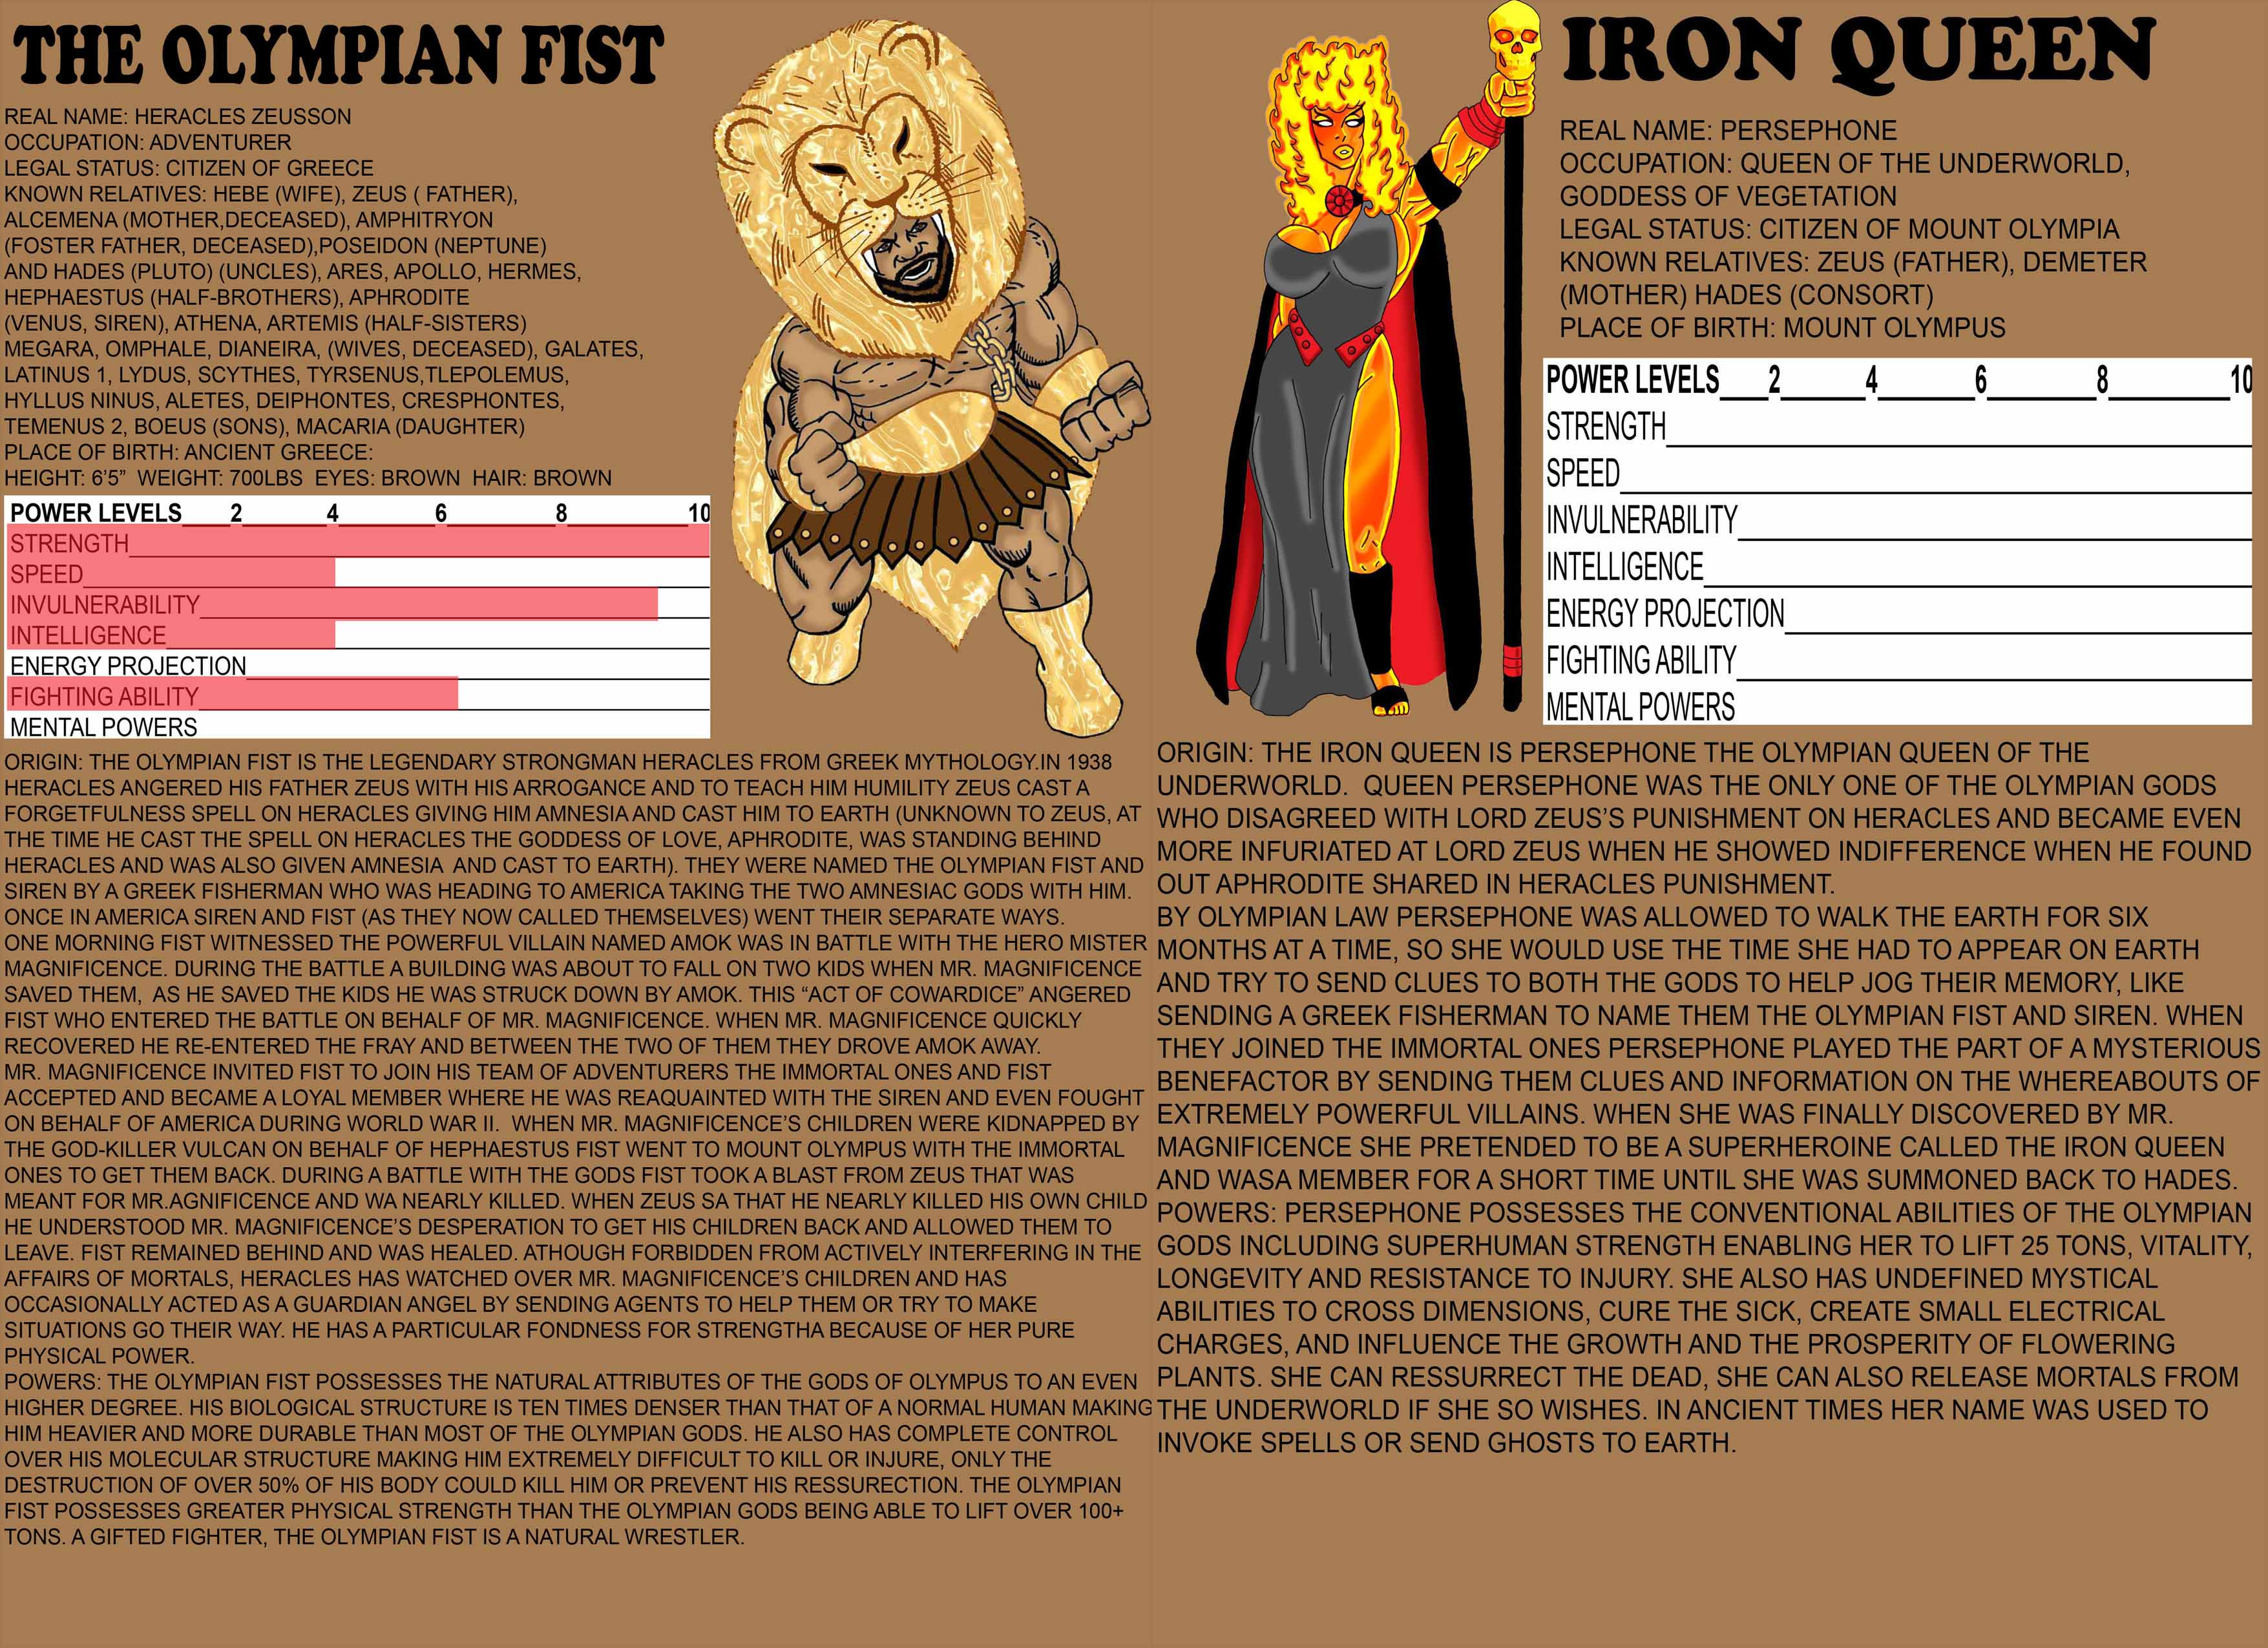 The Olympian Fist / The Iron Queen